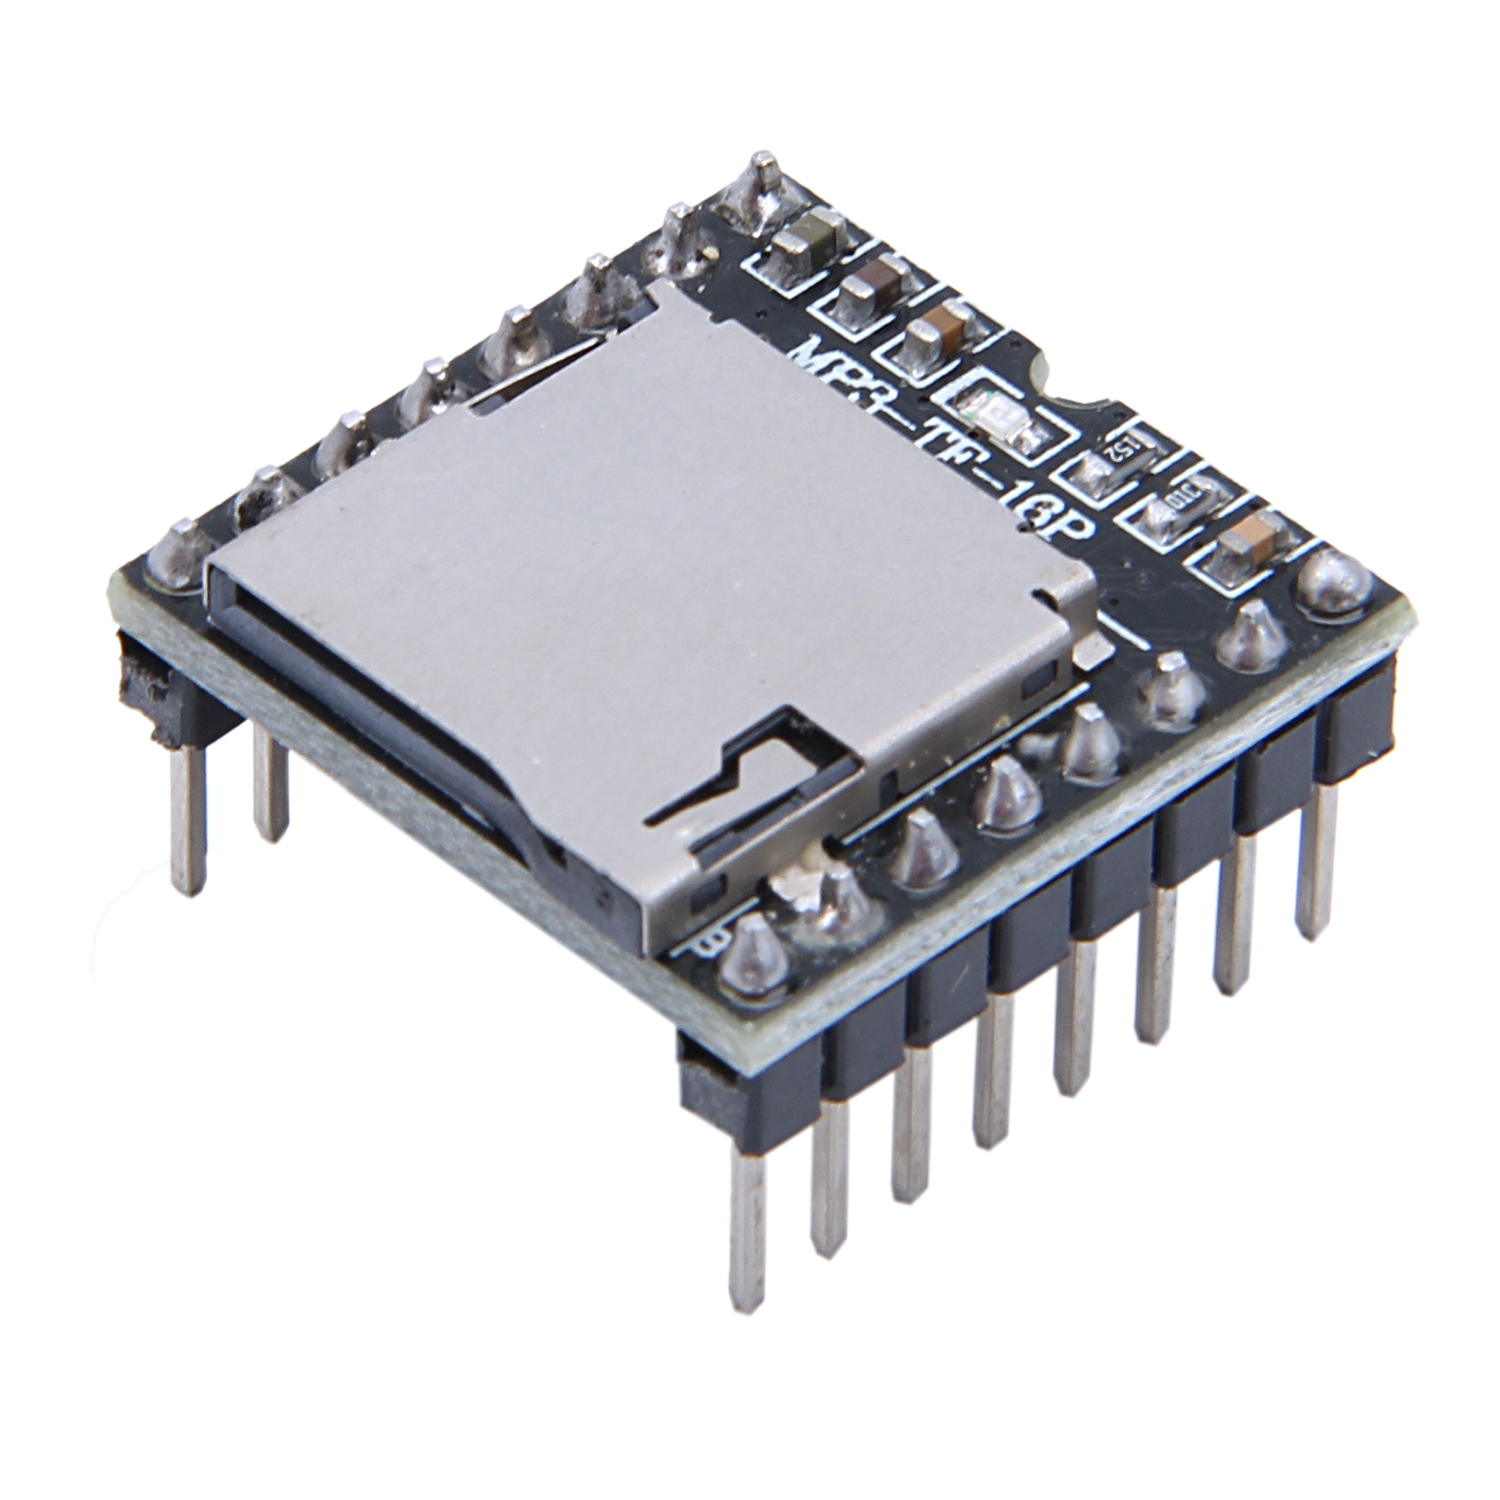 DFPlayer Mini <font><b>MP3</b></font> Player <font><b>Module</b></font> For Arduino Black image